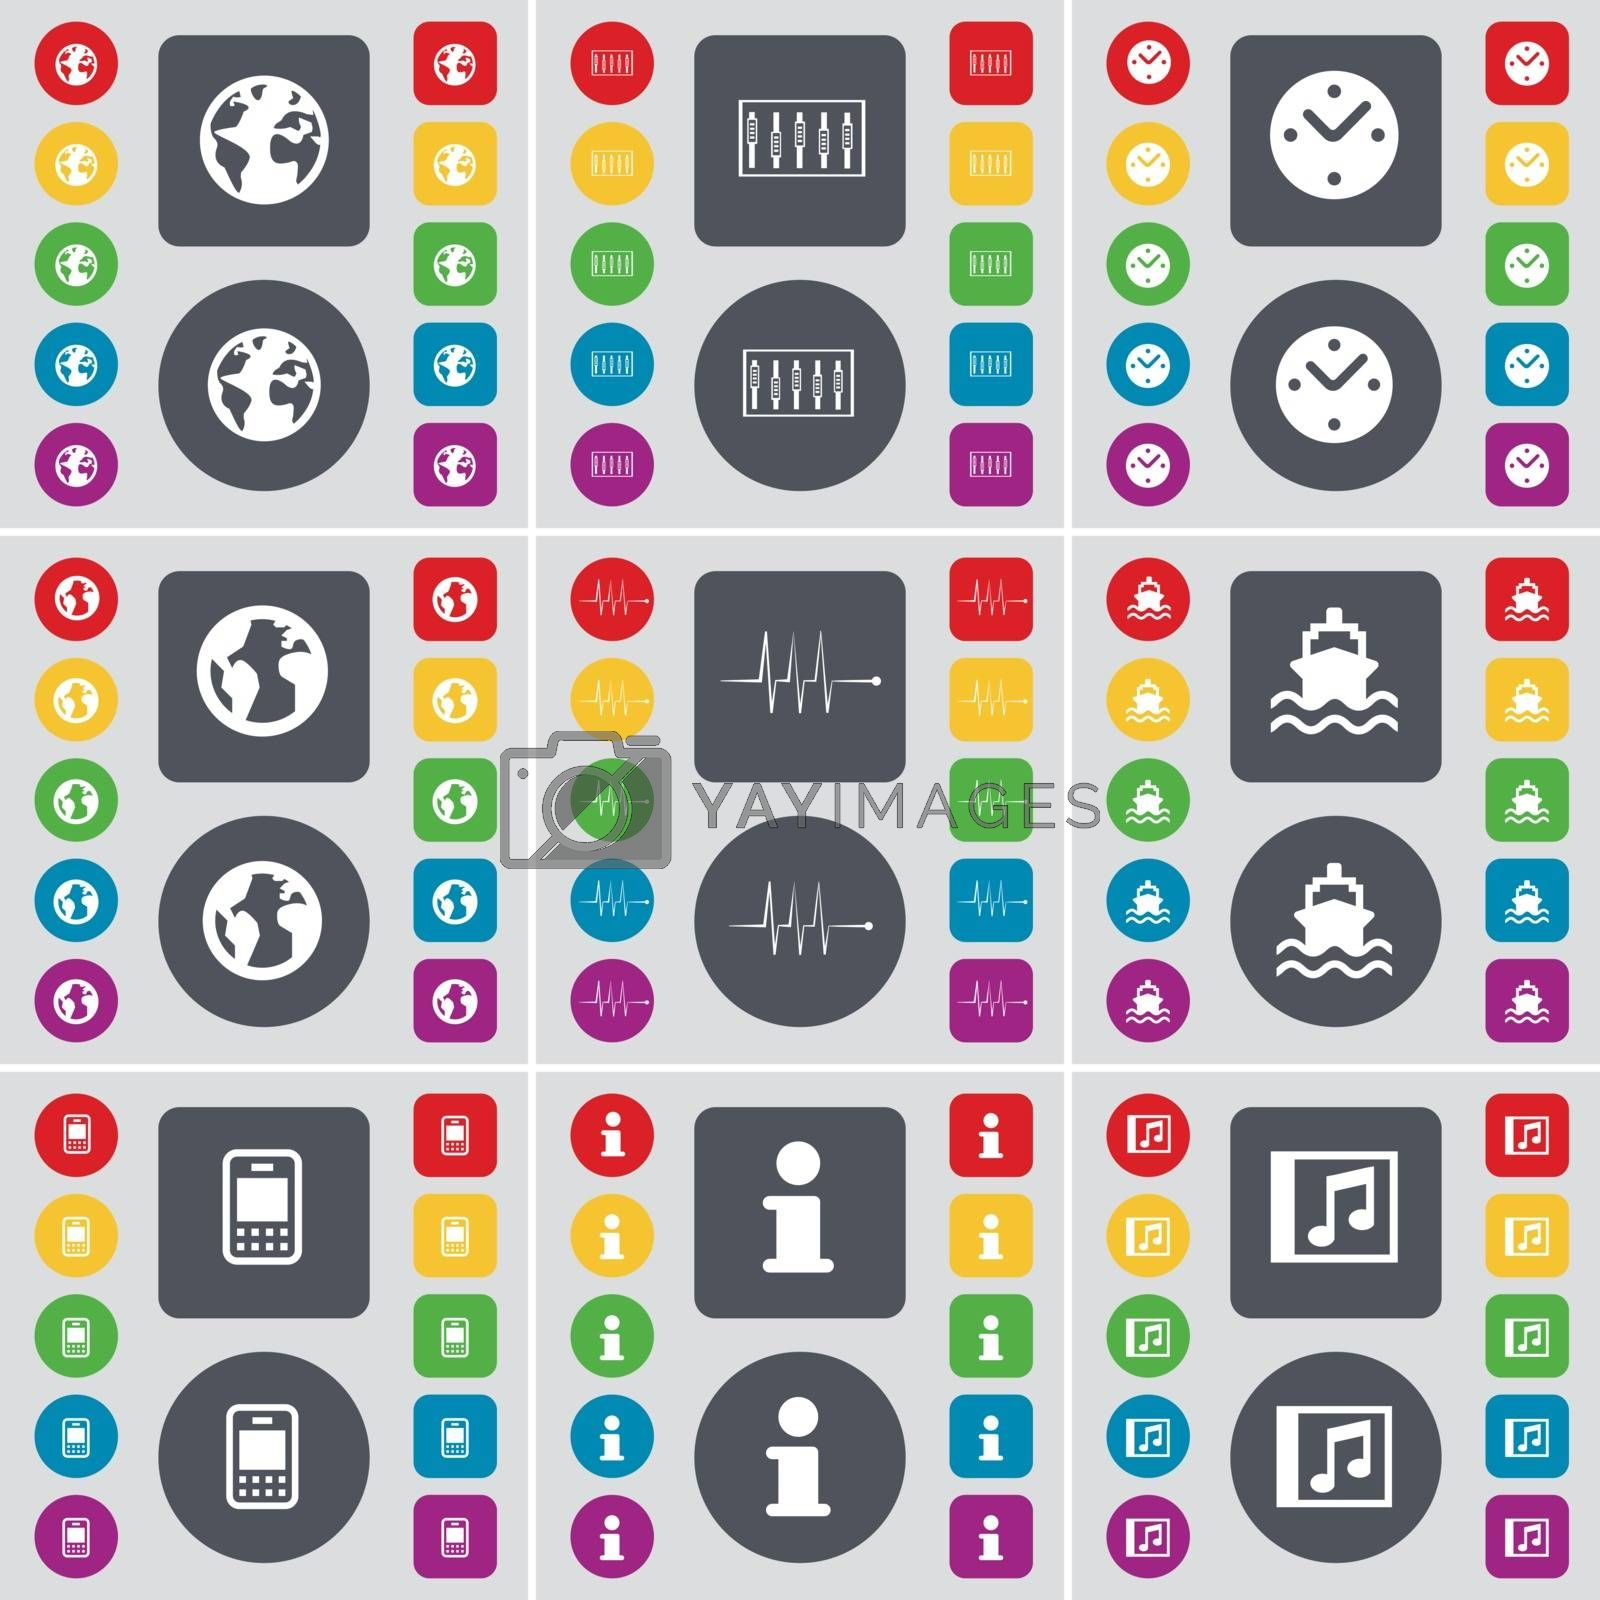 Royalty free image of Globe, Equalizer, Clock, Globe, Pulse, Ship, Mobile phone,  Information, Music window icon symbol. A large set of flat, colored buttons for your design. Vector by serhii_lohvyniuk